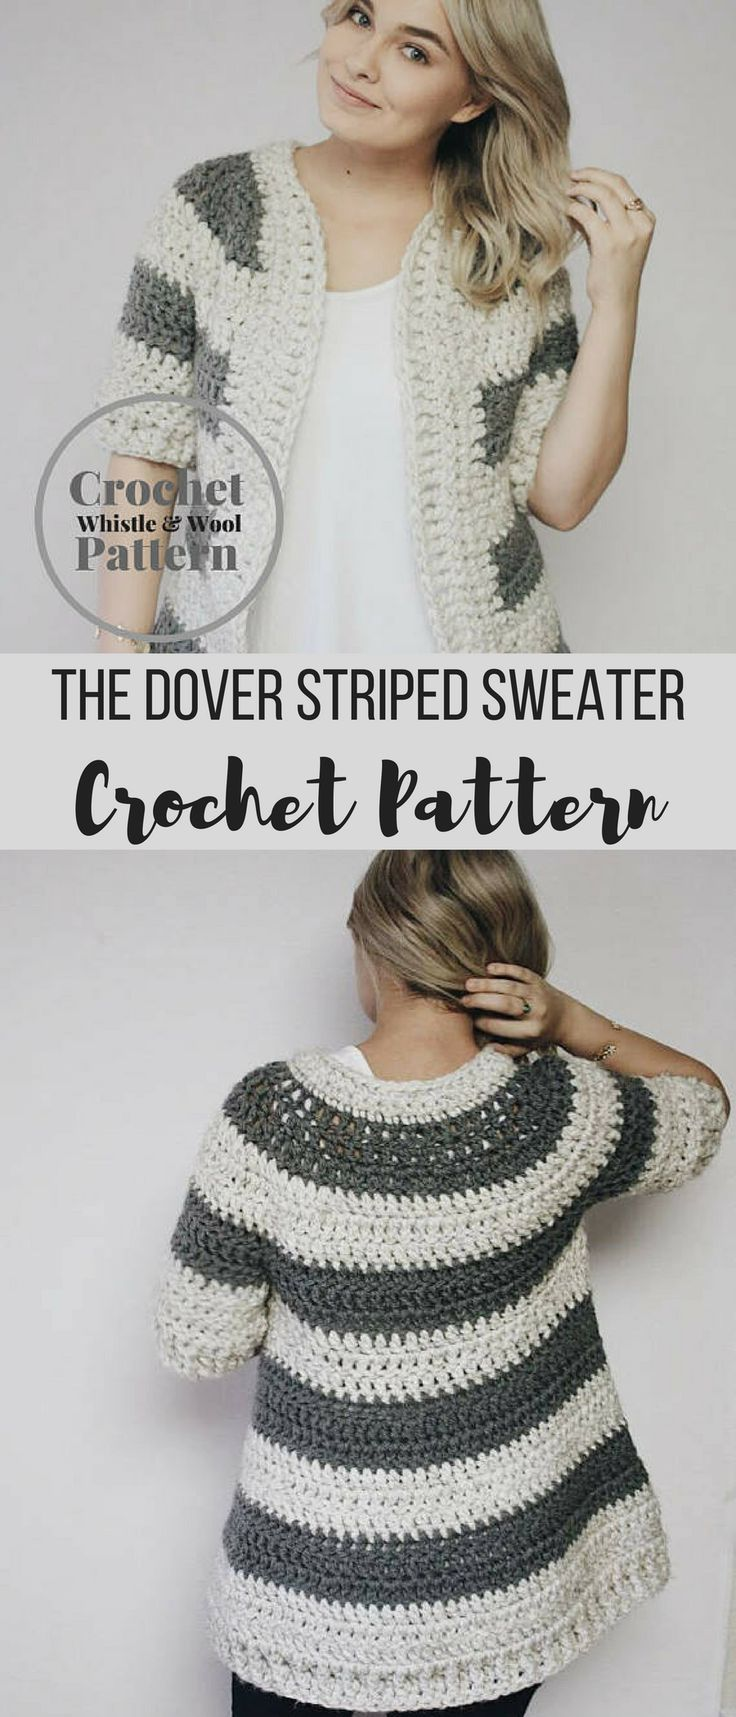 The Dover Striped Women\'s Cardigan Sweater Crochet Pattern ...